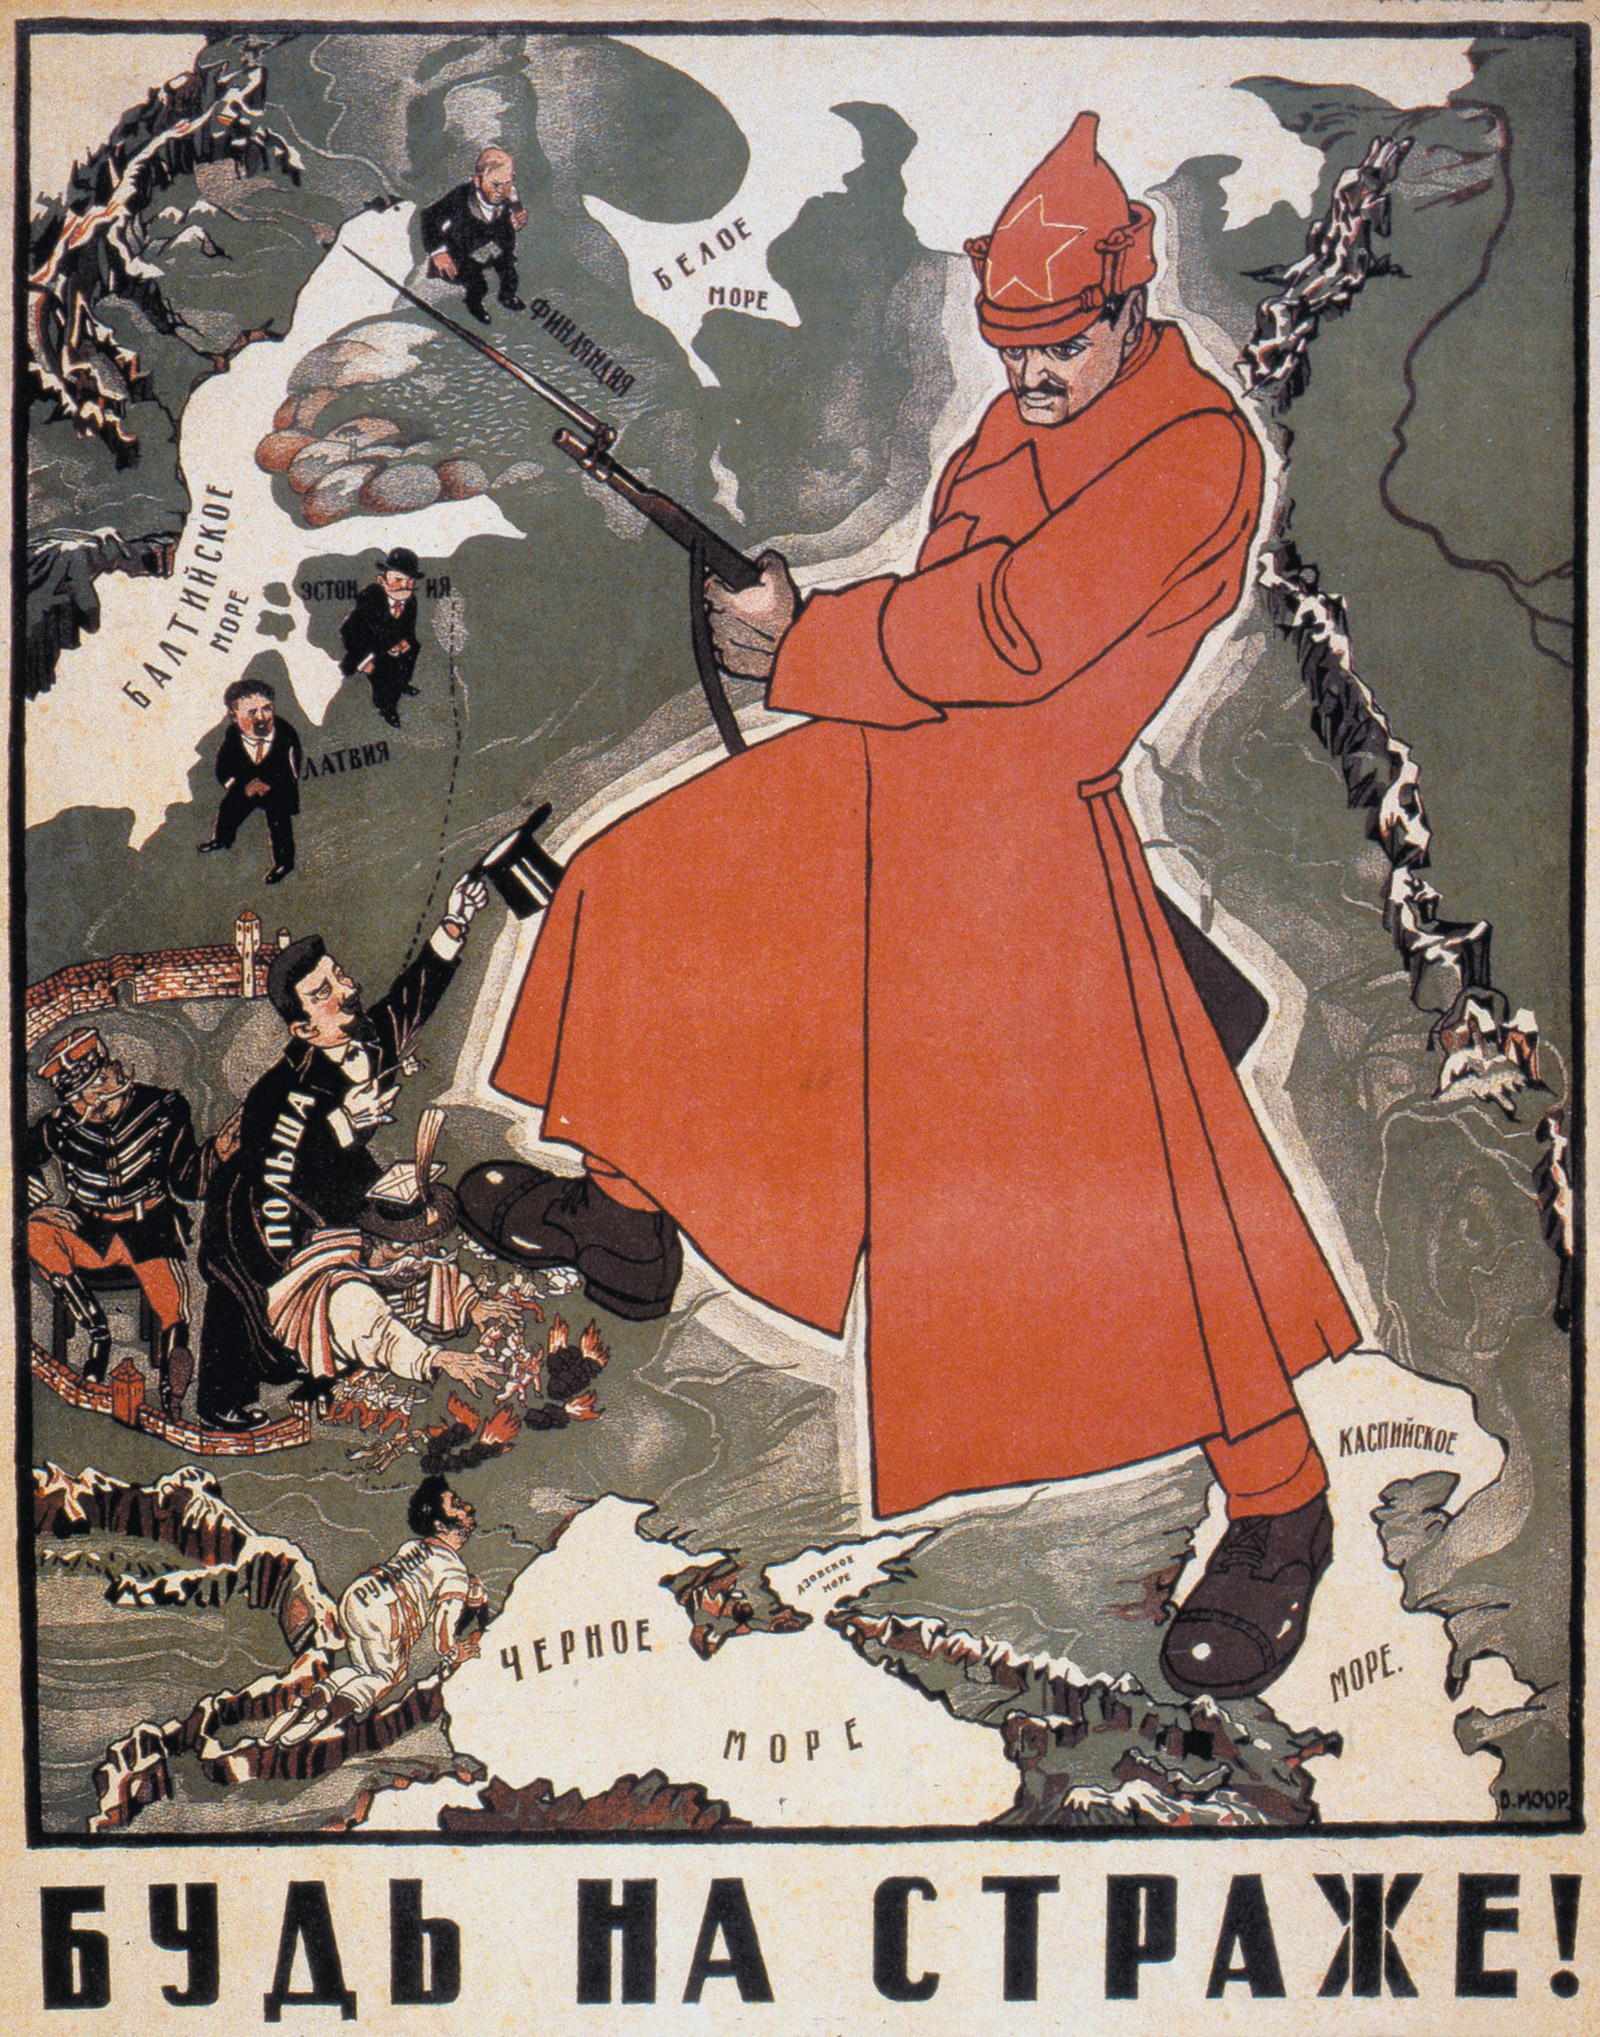 A Soviet propaganda poster with the caption 'Be on Guard!' urging Ukrainians, Lithuanians, and Poles to beware of the Polish leader Józef Piłsudski, 1920